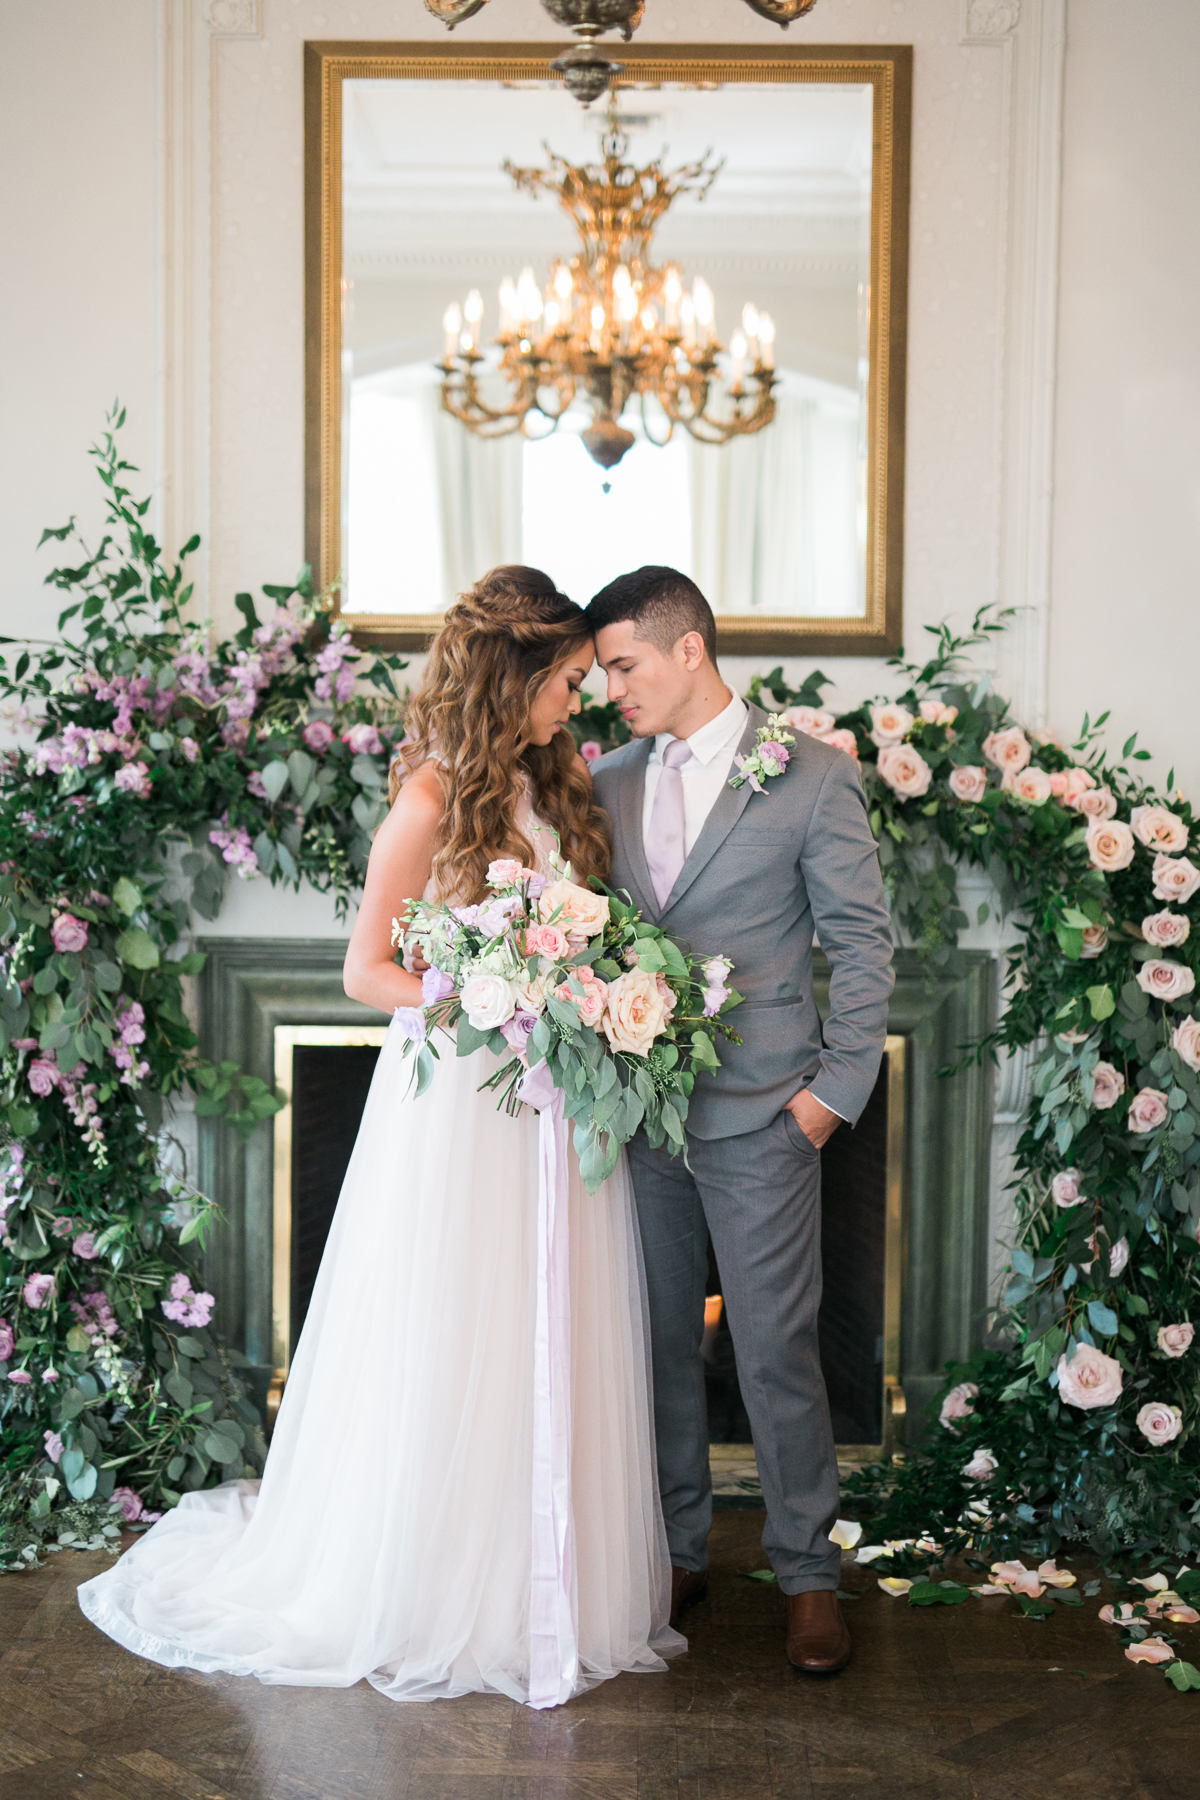 August In Bloom - Ceremony with lush garland - Fairytale Wedding (Wedluxe)